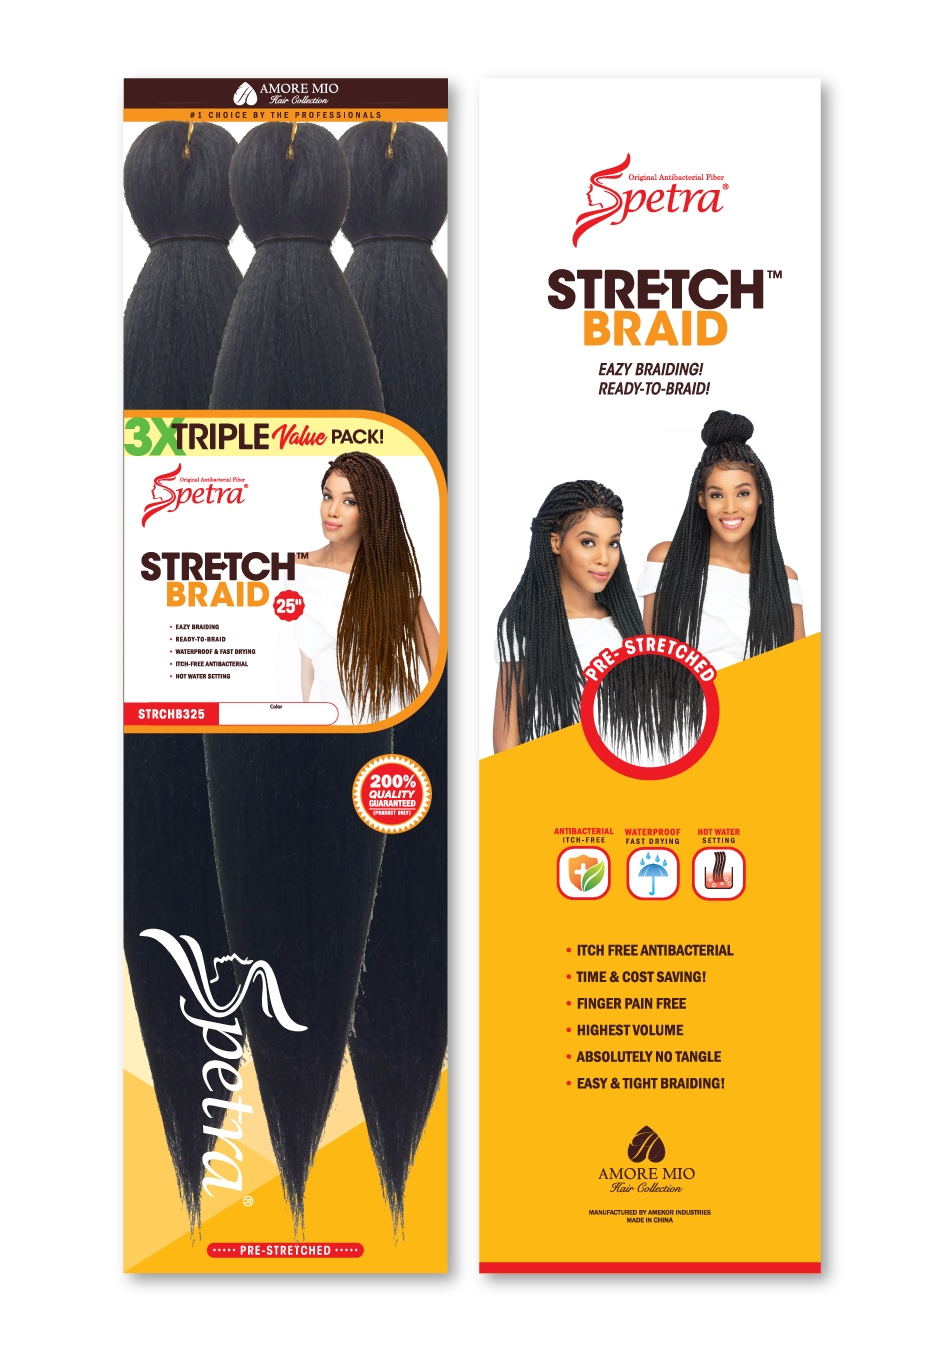 SPECTRA PRE-STRETCHED BRAIDING HAIR - Easy braiding. Great Value. High Quality.